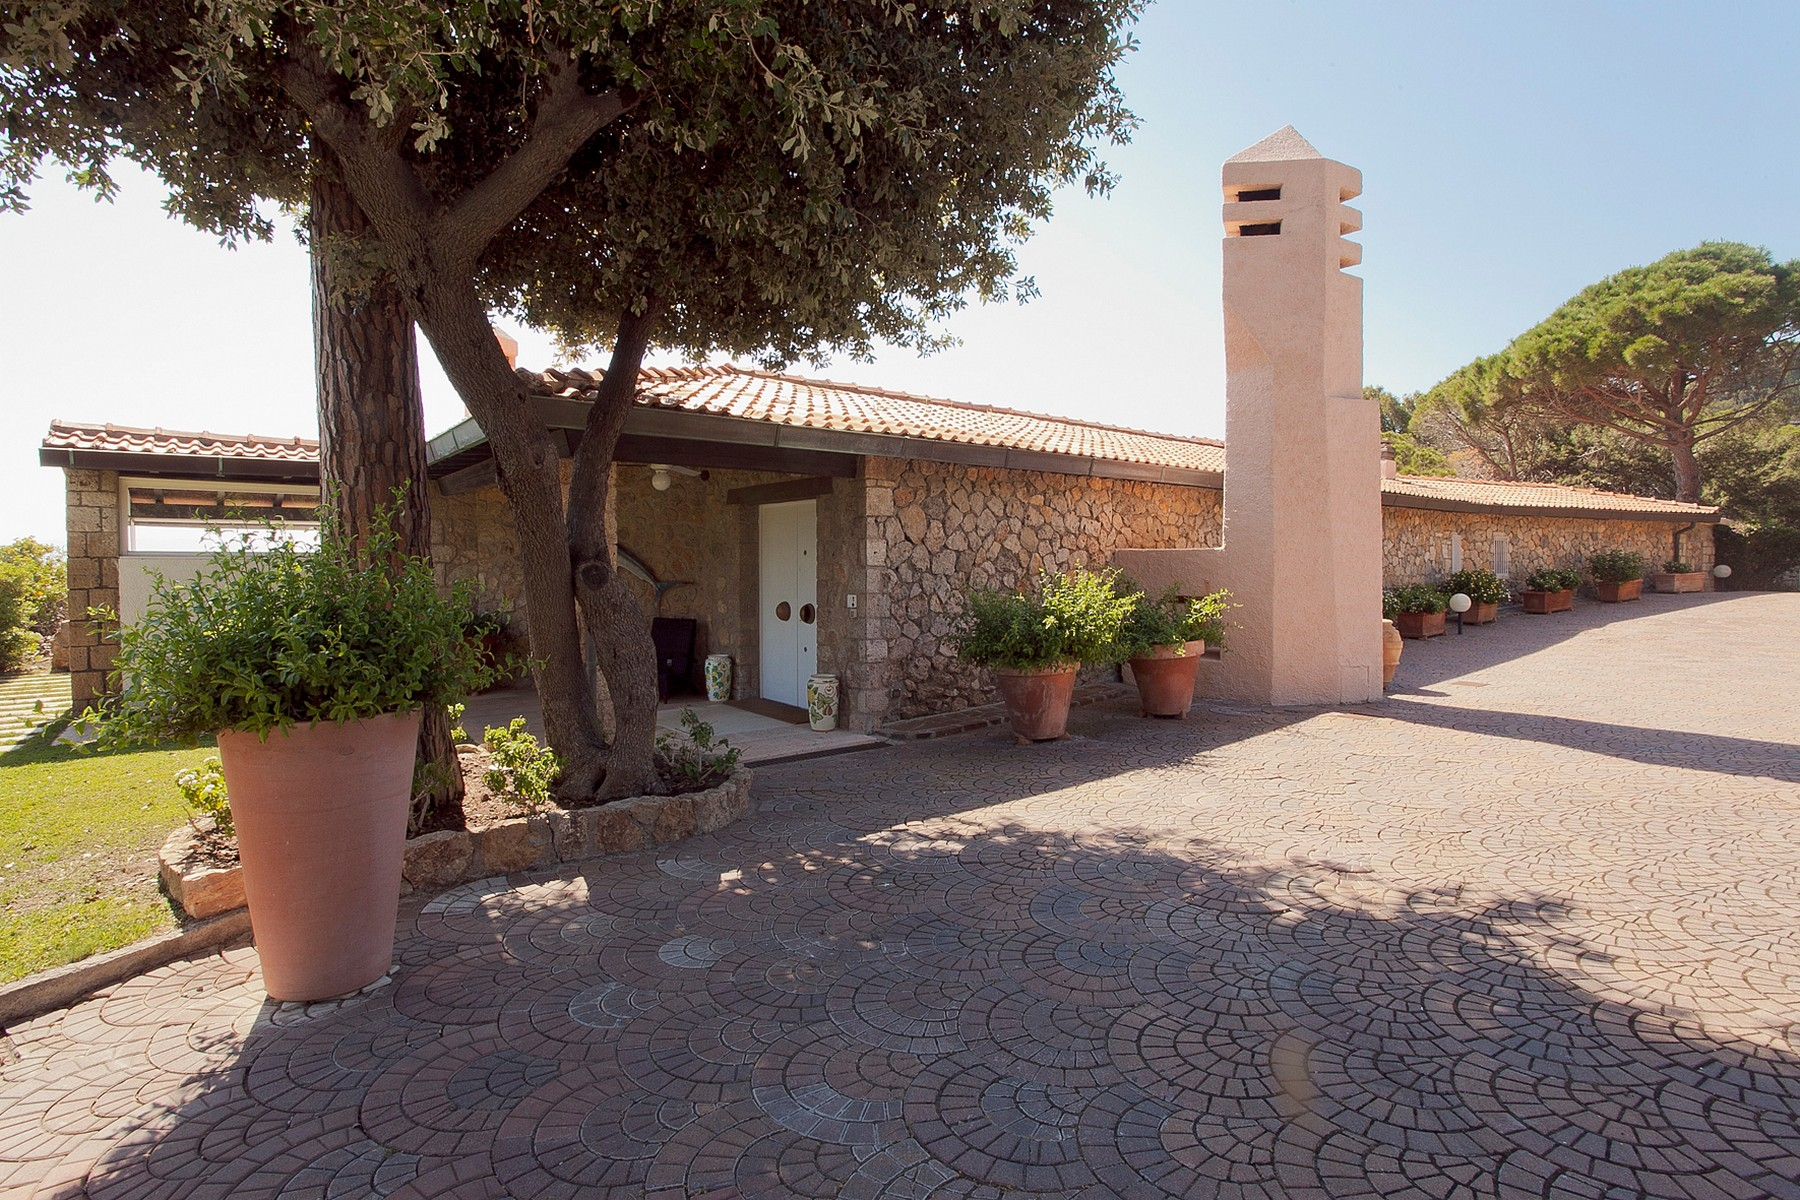 Additional photo for property listing at Splendid Villa on Monte Argentario Cala Piccola Di Monte Argentario Grosseto, Grosseto 58019 Italia